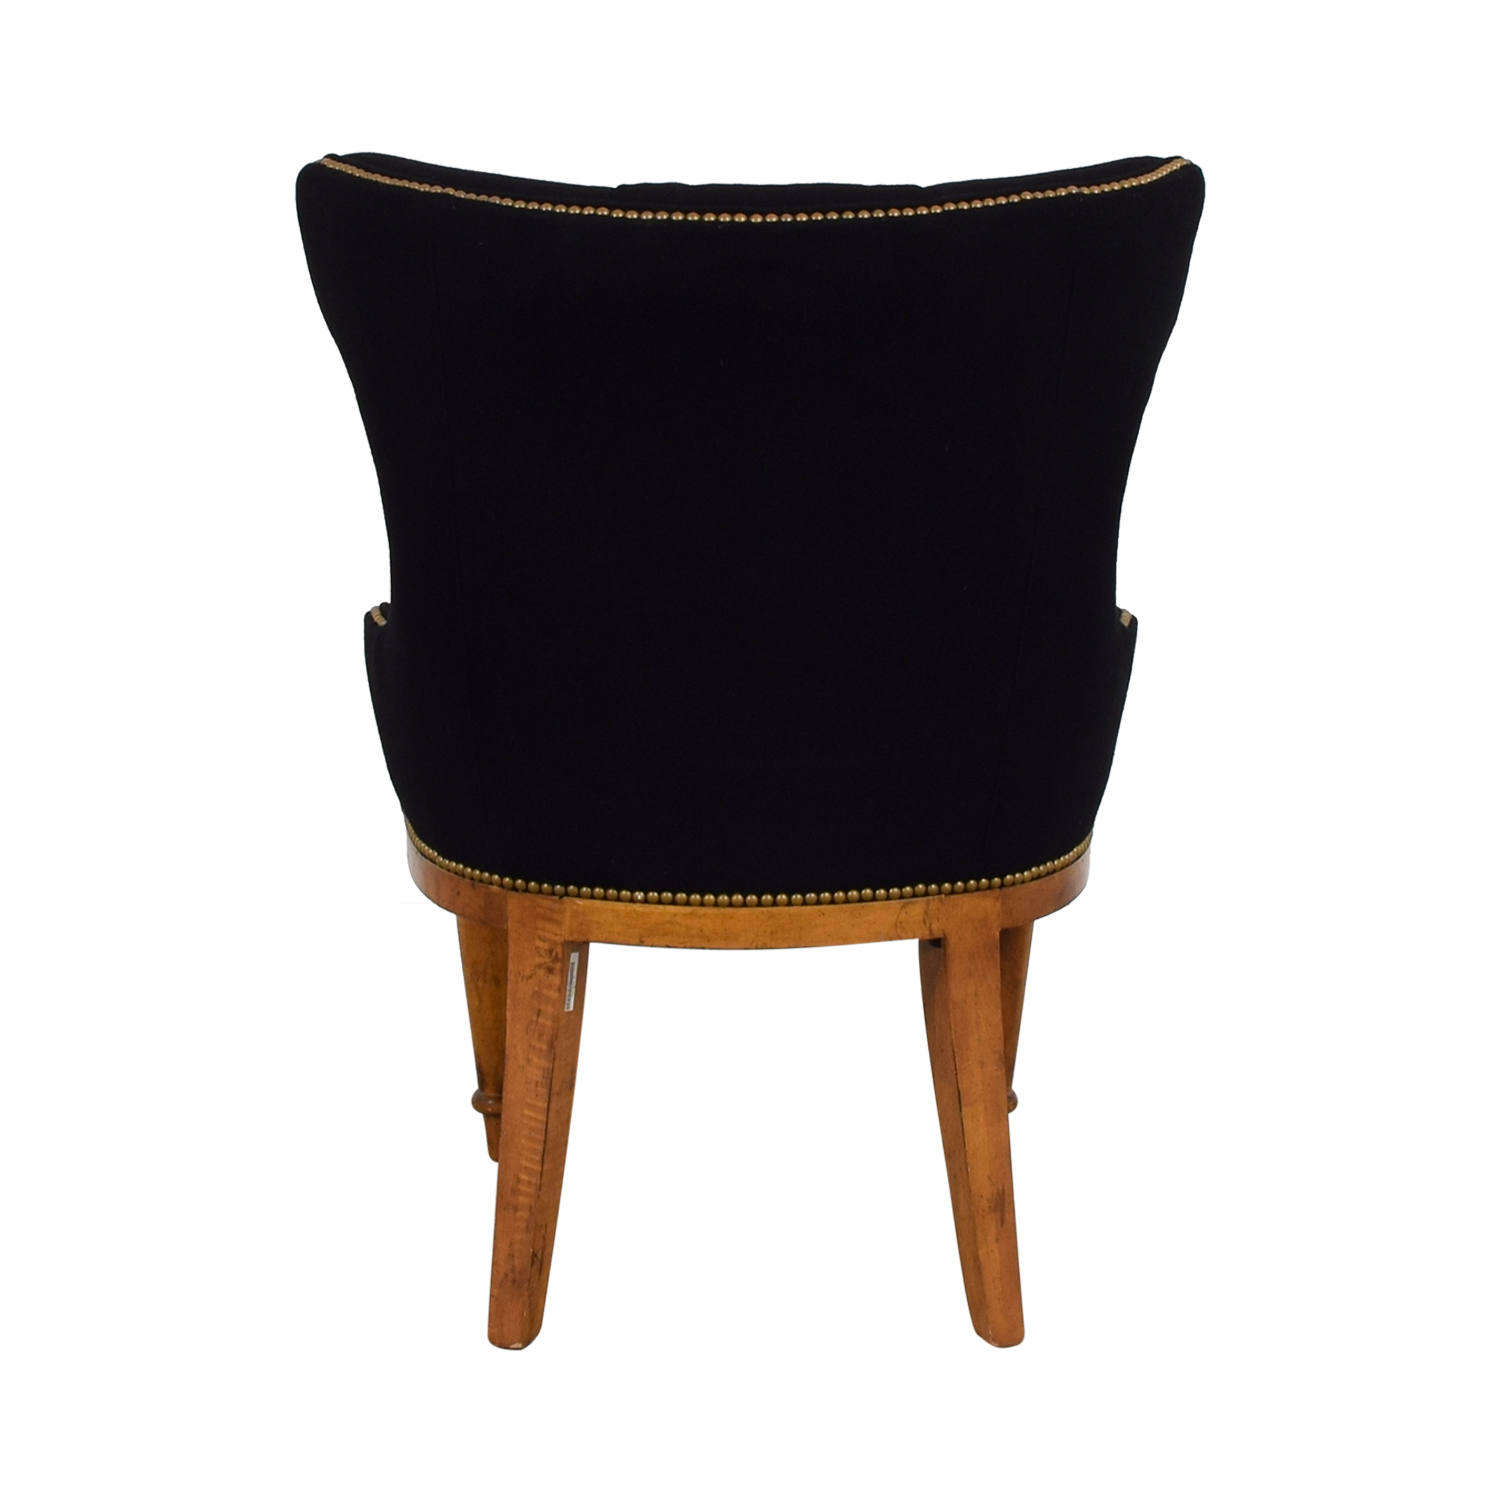 Furniture Masters Furniture Masters Black Tufted Nailhead Accent Chair black